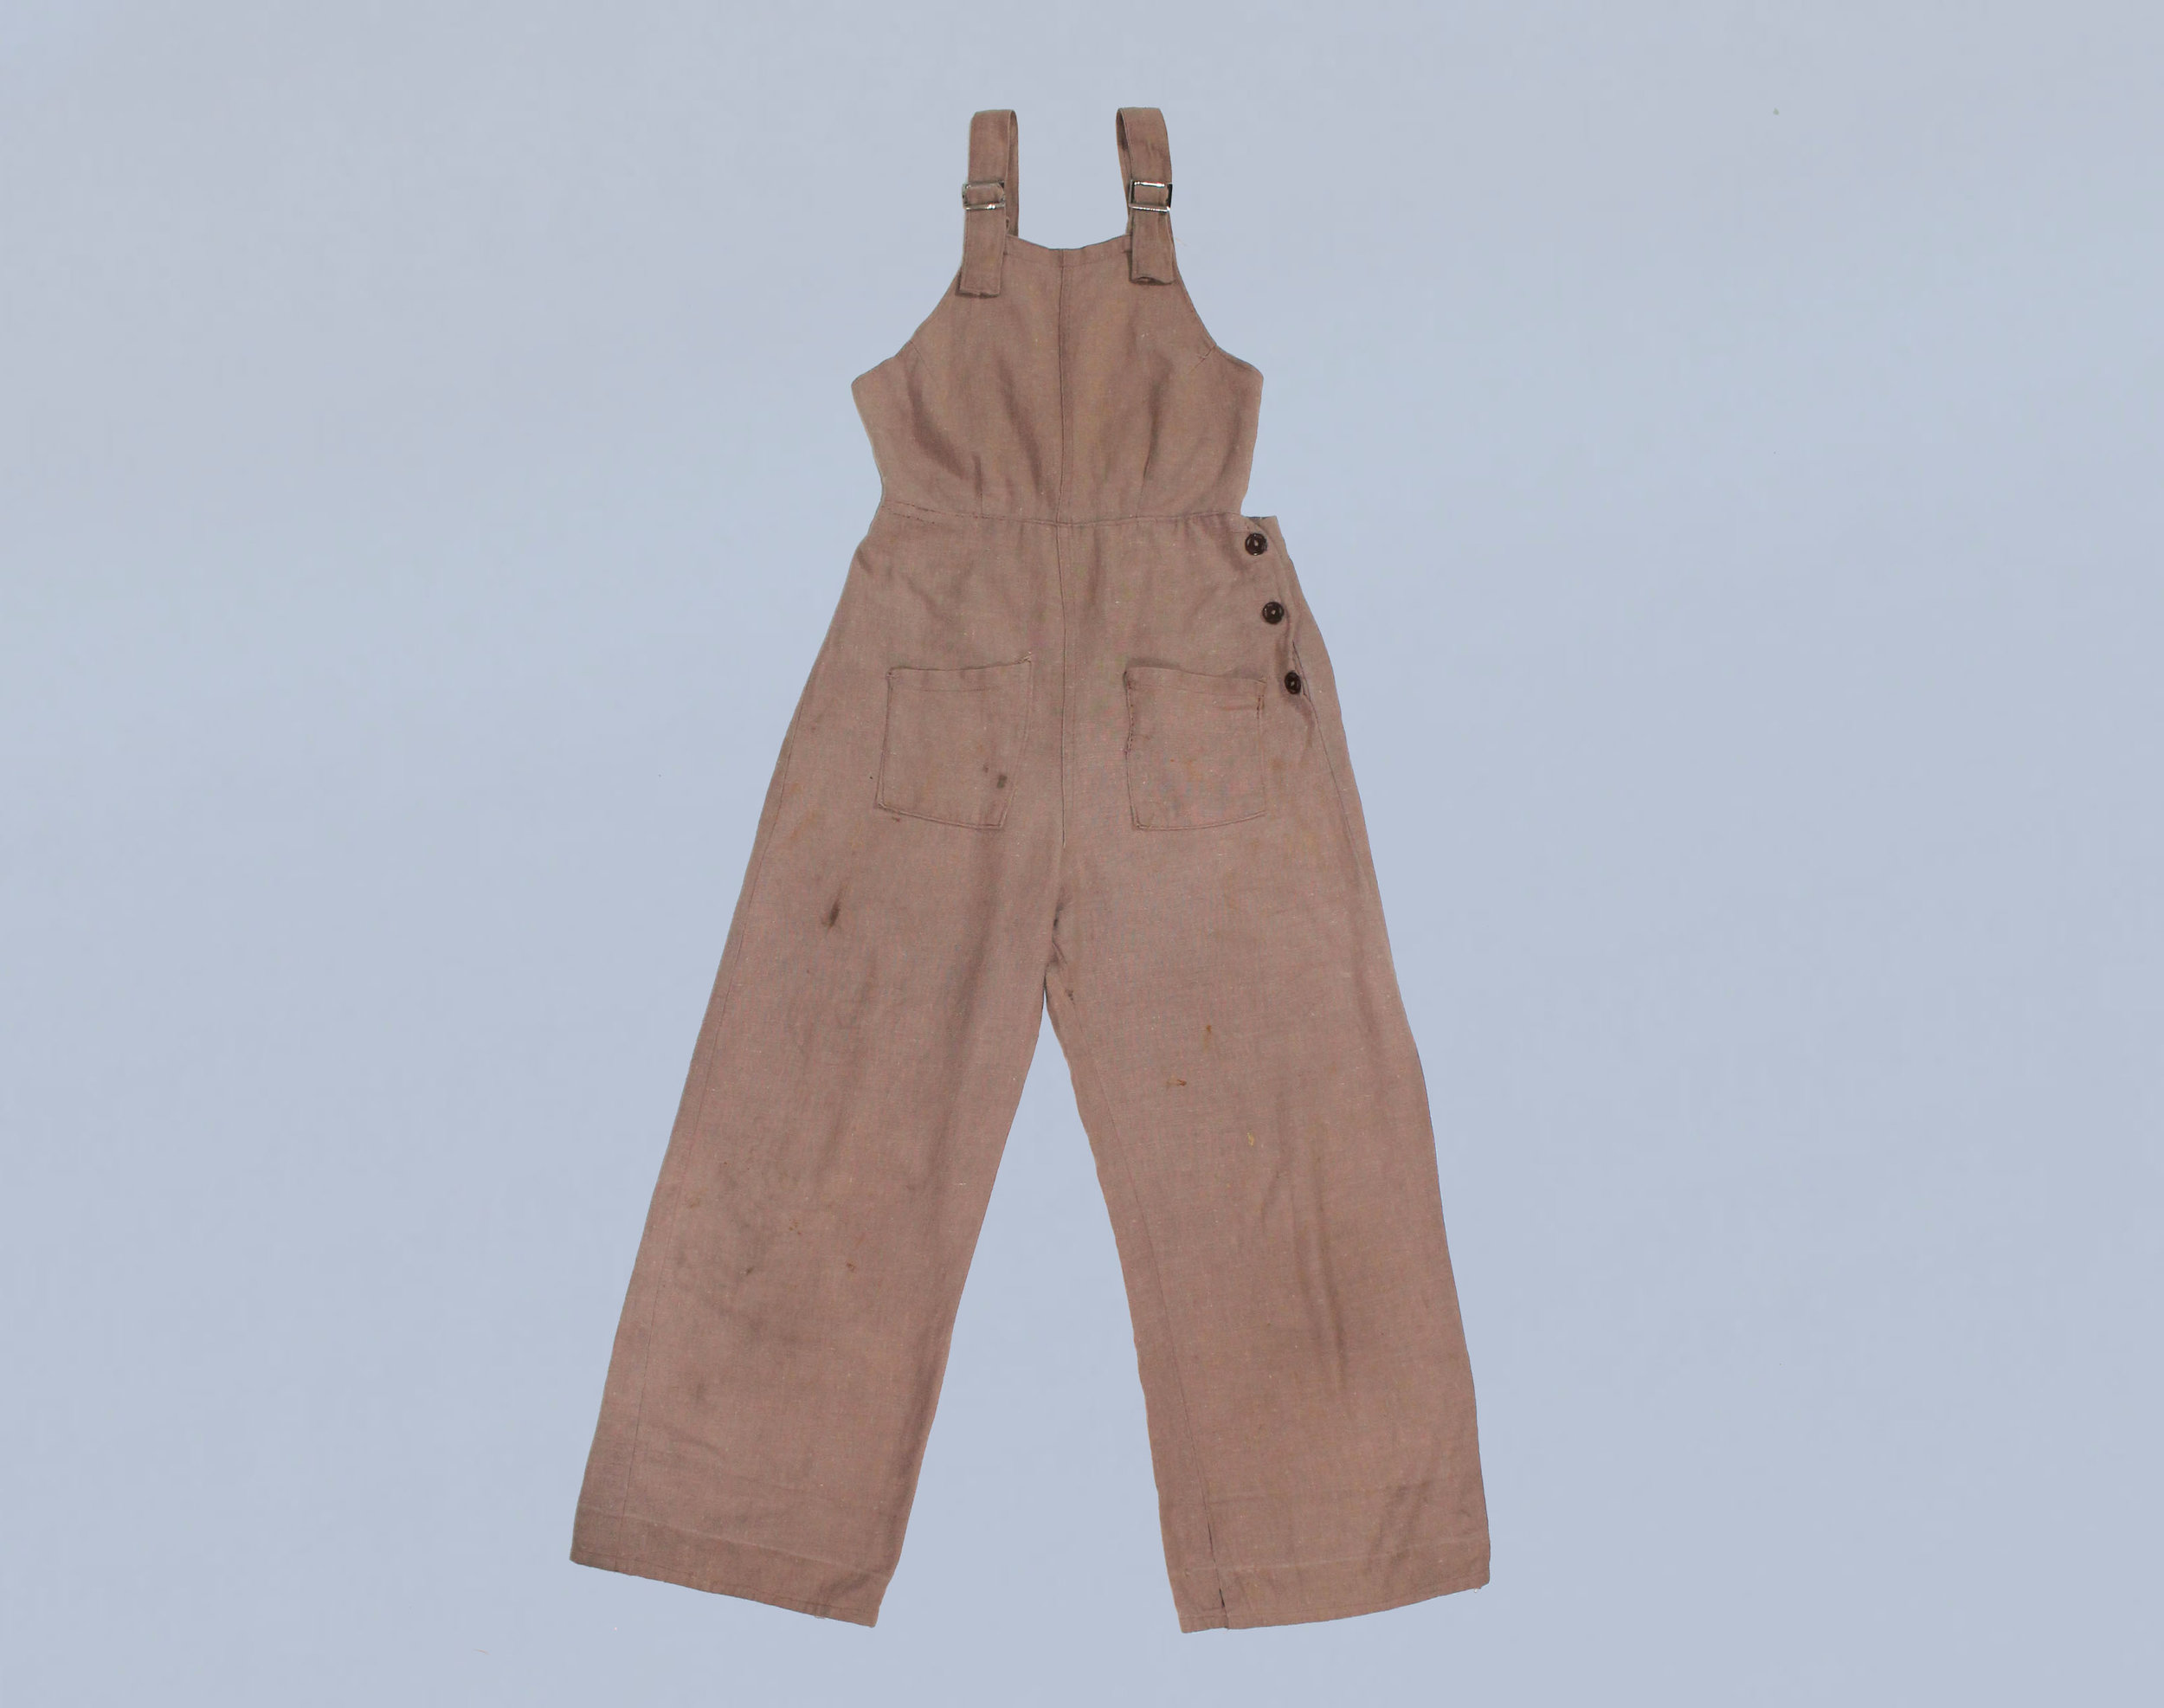 Cotton overall jumpsuit with open back, 1930s-1940s